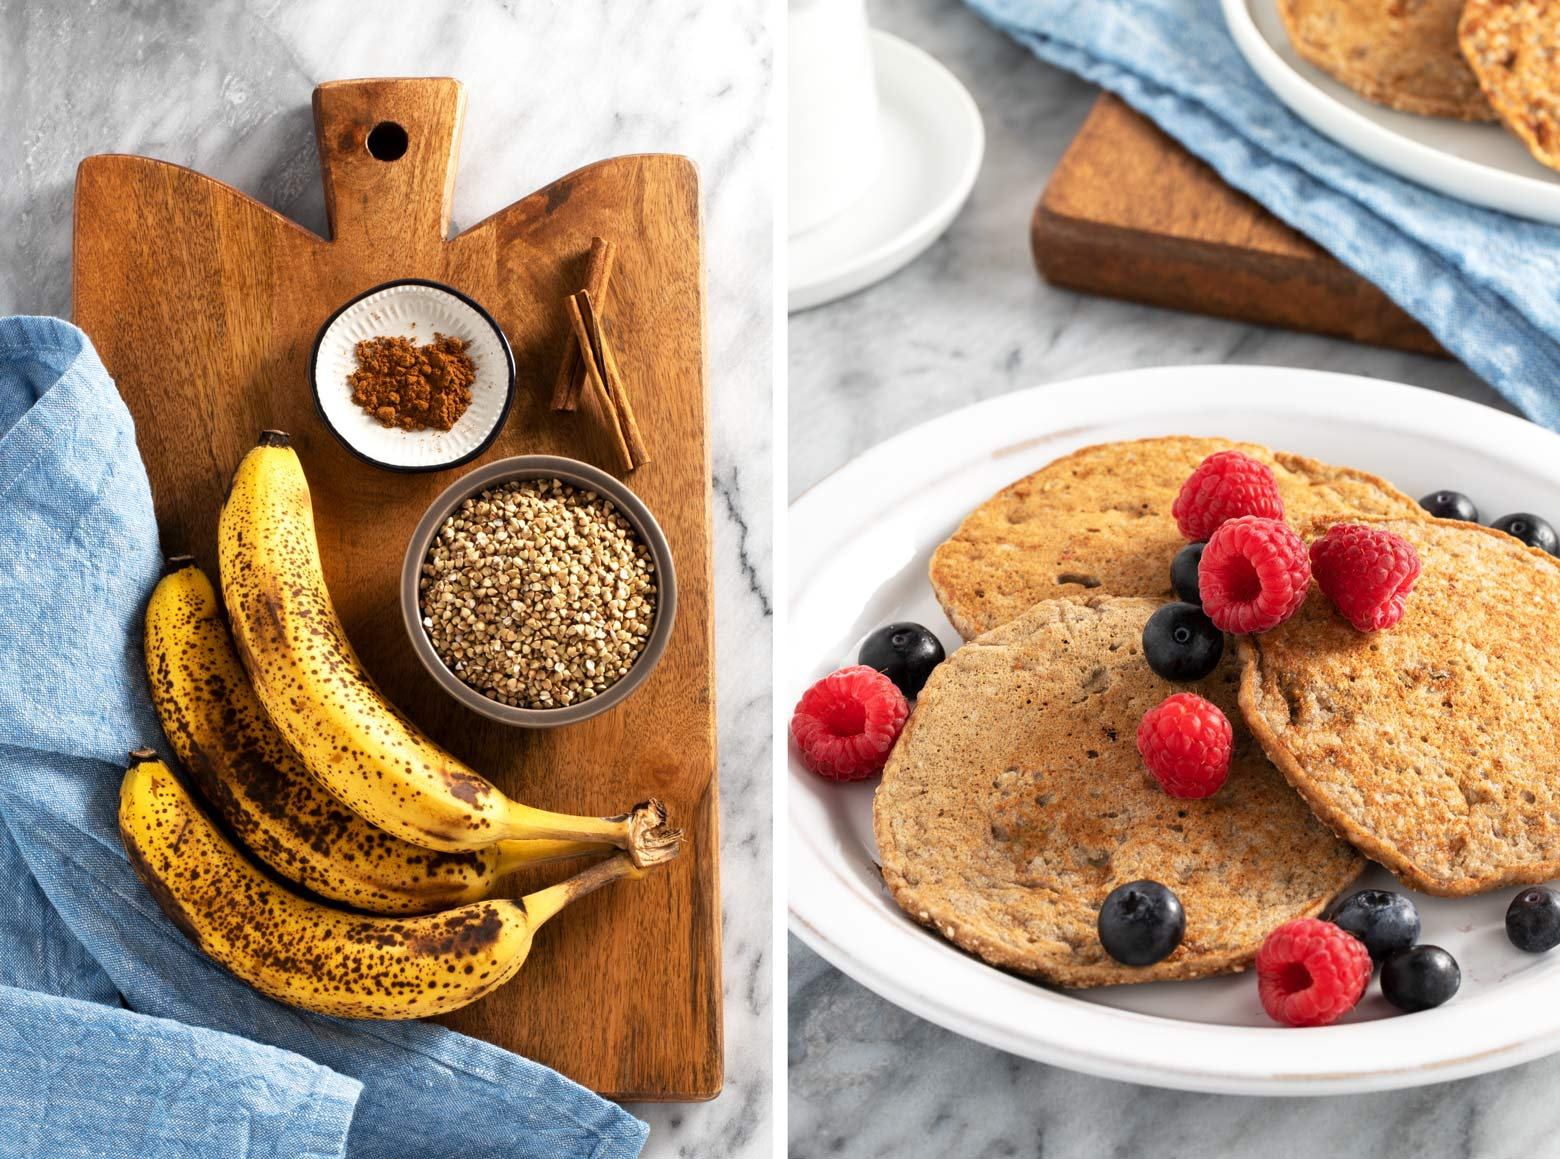 Ripe bananas and buckwheat are the main ingredients for these easy buckwheat banana pancakes.